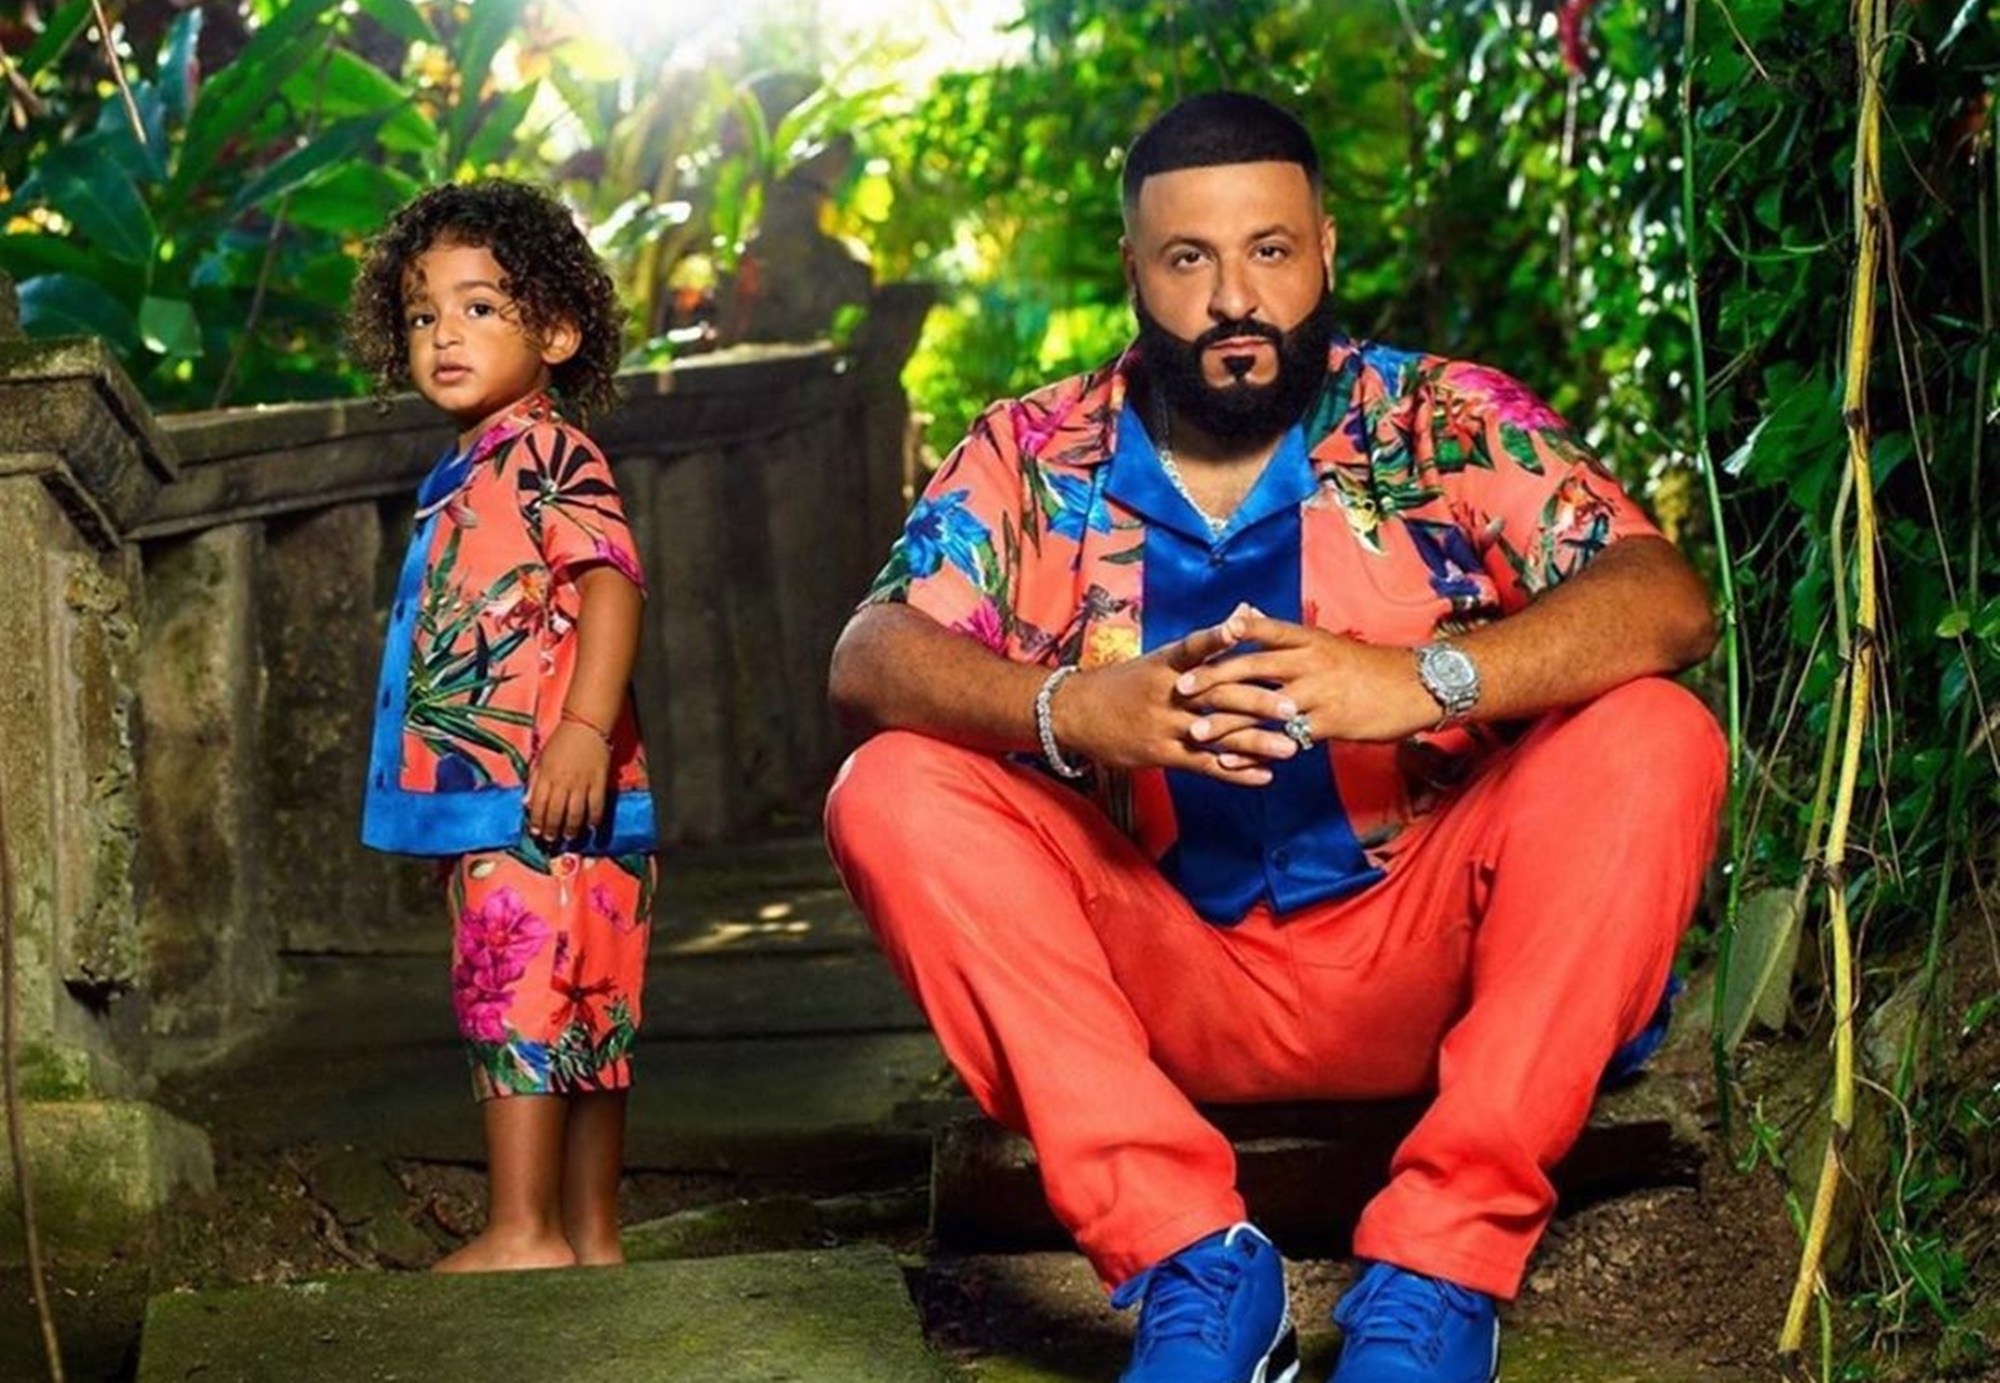 dj-khaled-says-he-is-not-beefing-with-tyler-the-creator-and-his-label-over-lackluster-album-sales-is-this-a-marketing-ploy-to-reach-his-initial-goal